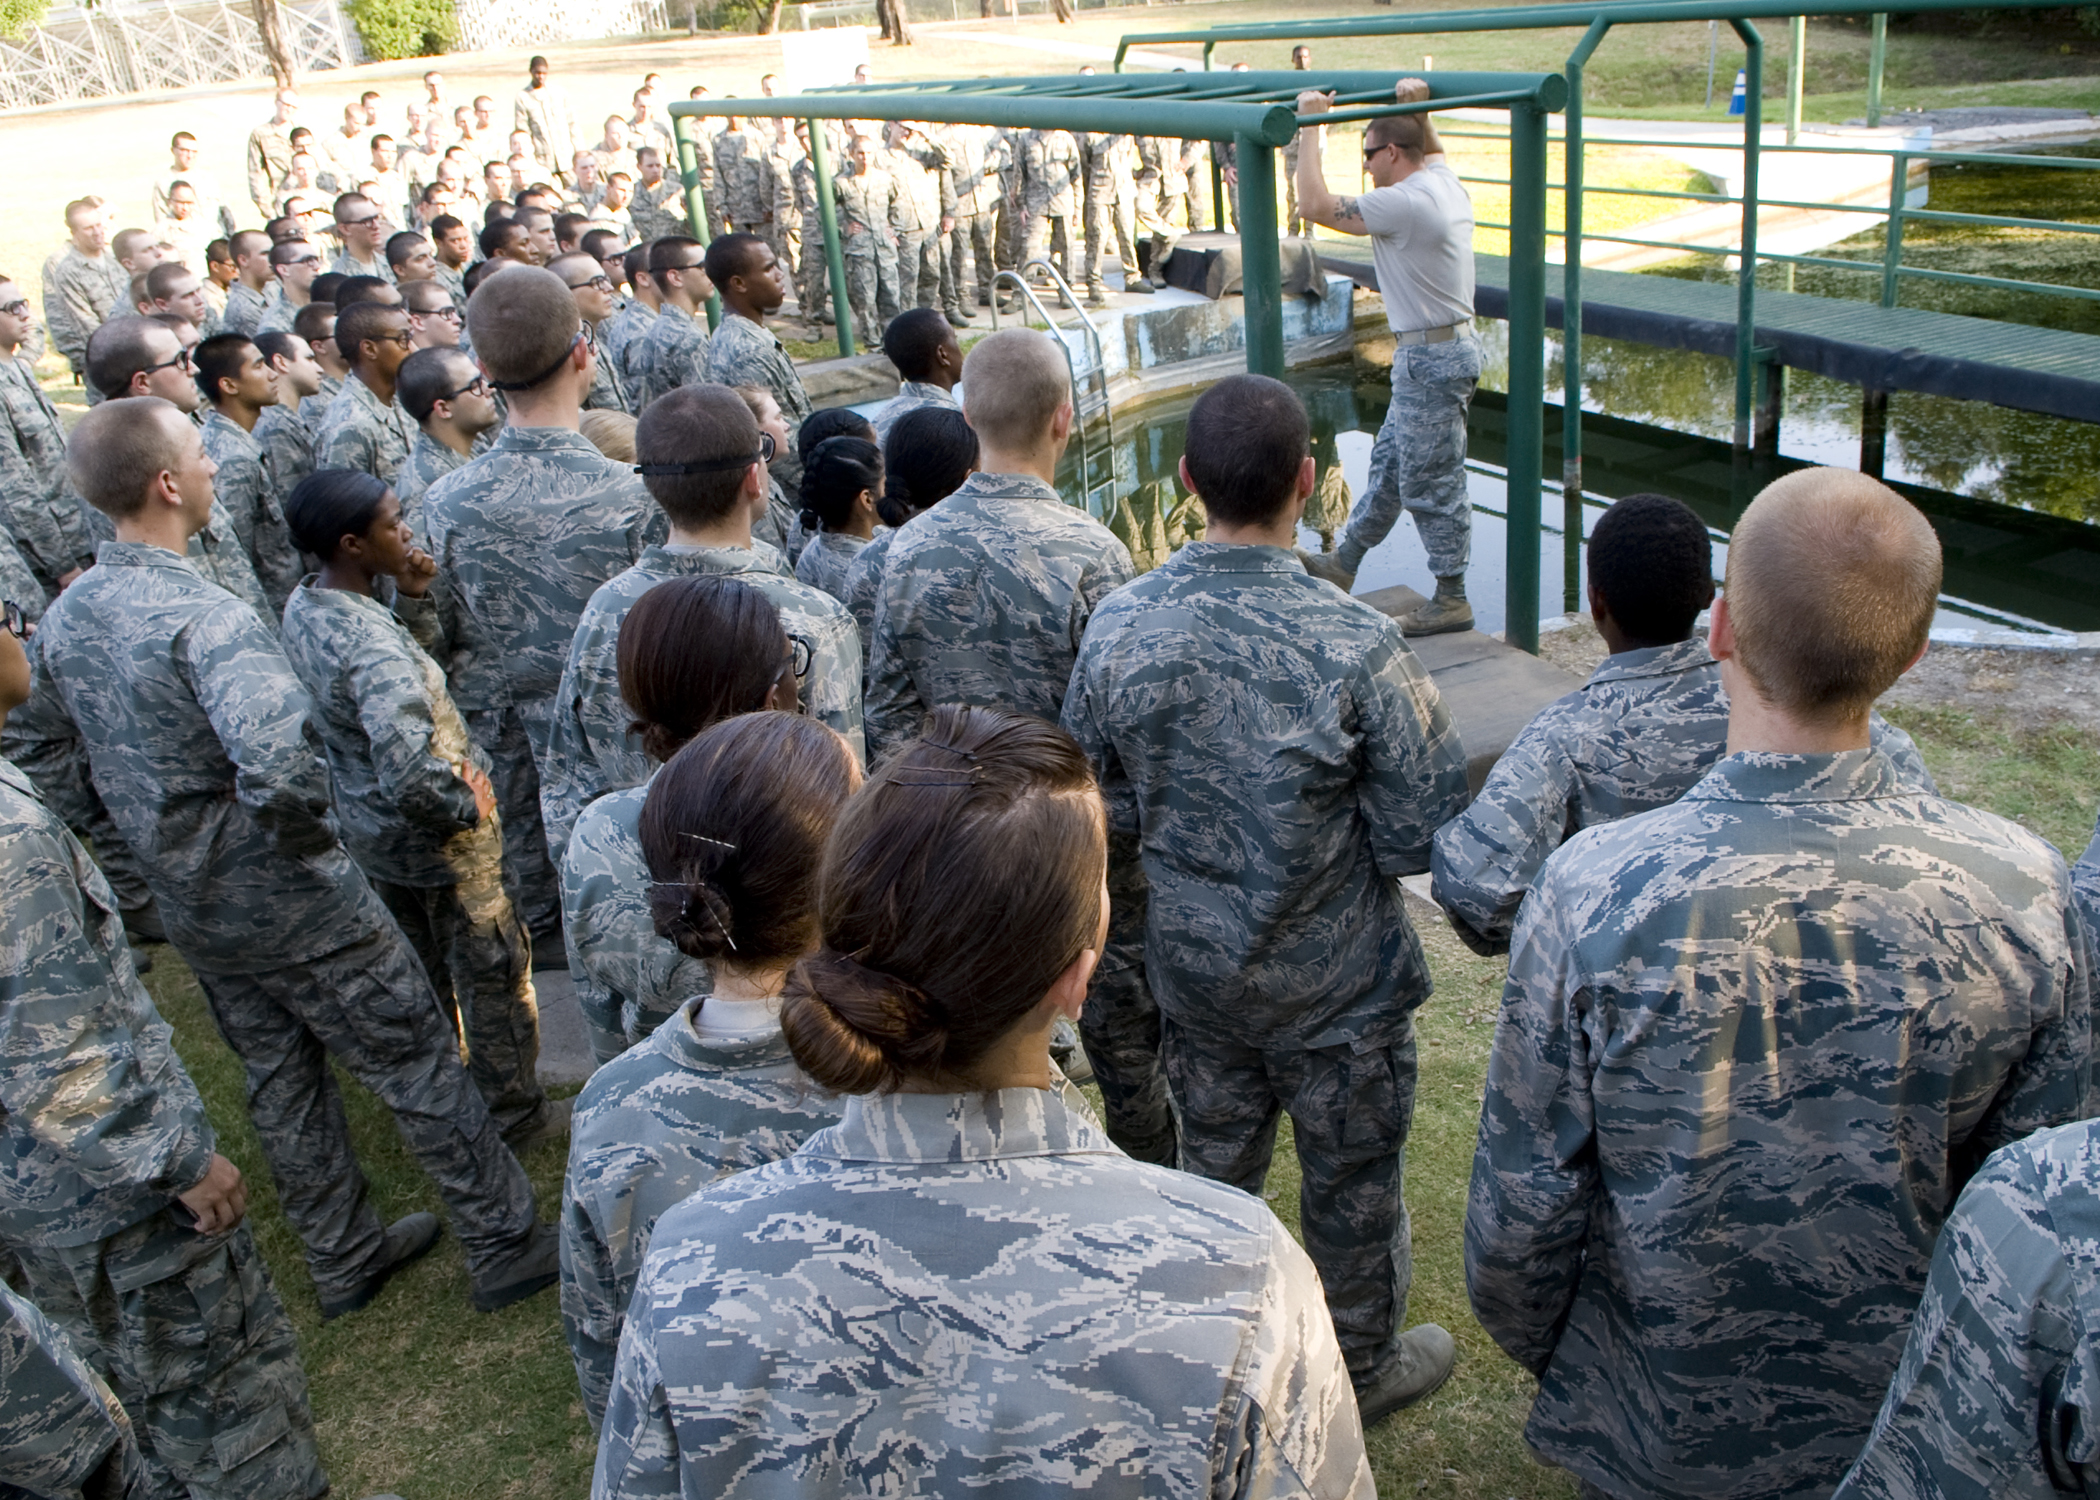 photo essay overcoming obstacles > joint base san antonio > news photo essay overcoming obstacles